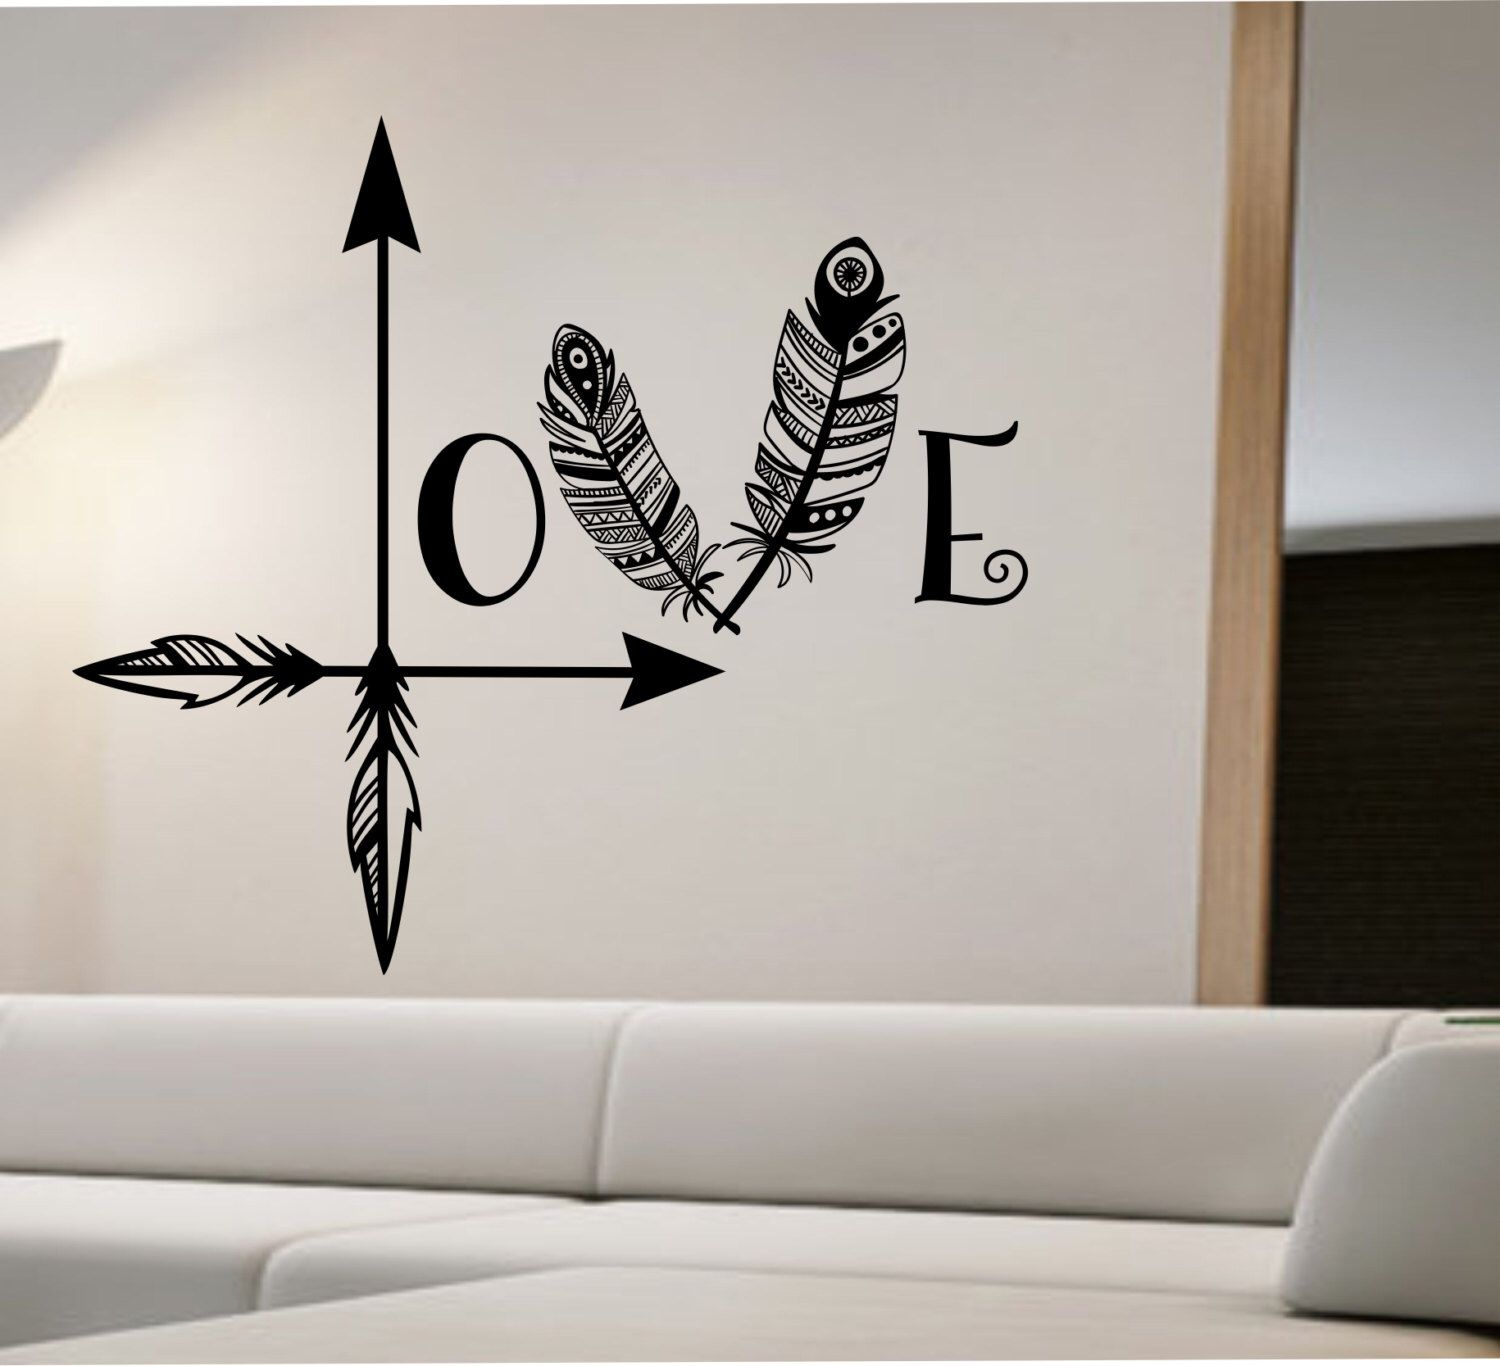 Vinyl Wall Clings Wall Decal Vinyl Sticker Decals Art Home Decor